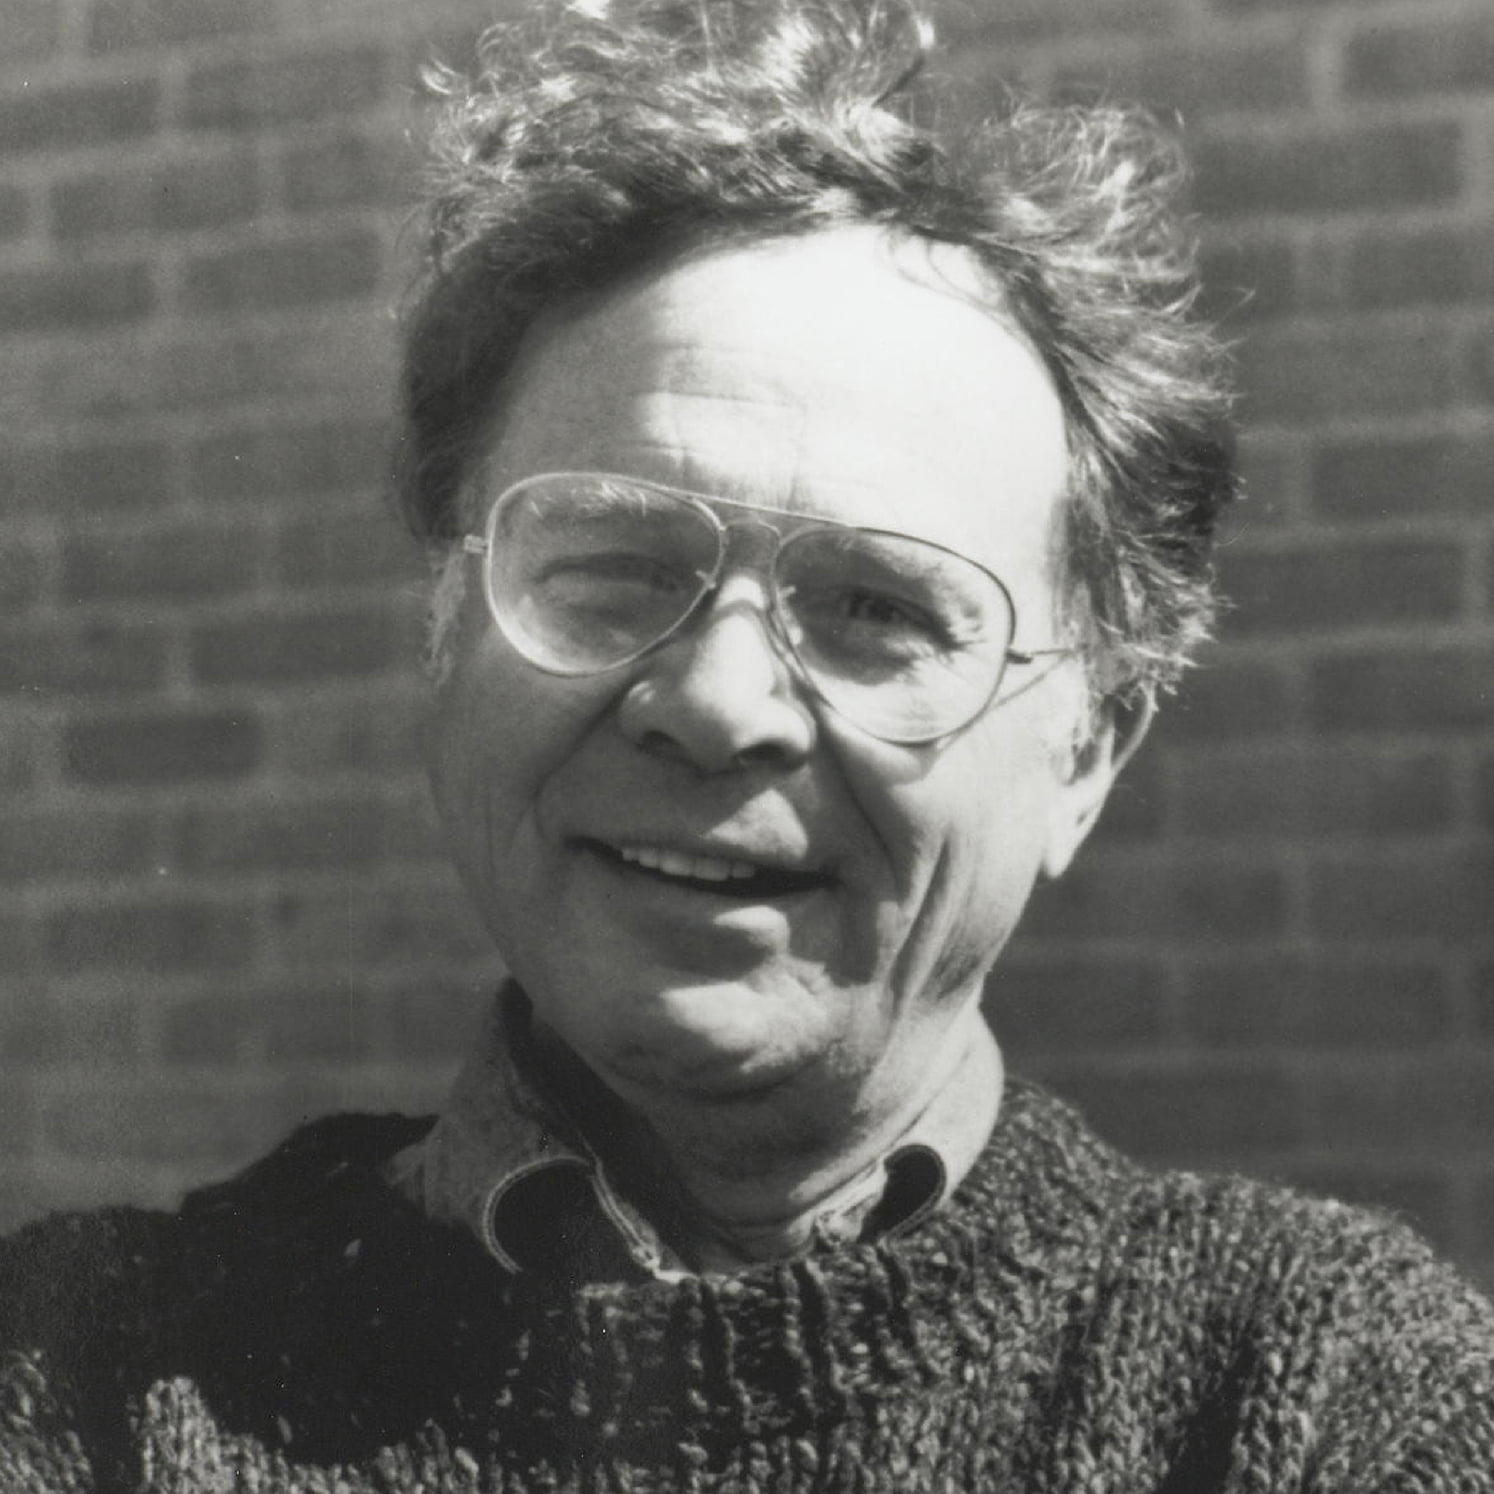 Dr. Wallace S. Broecker